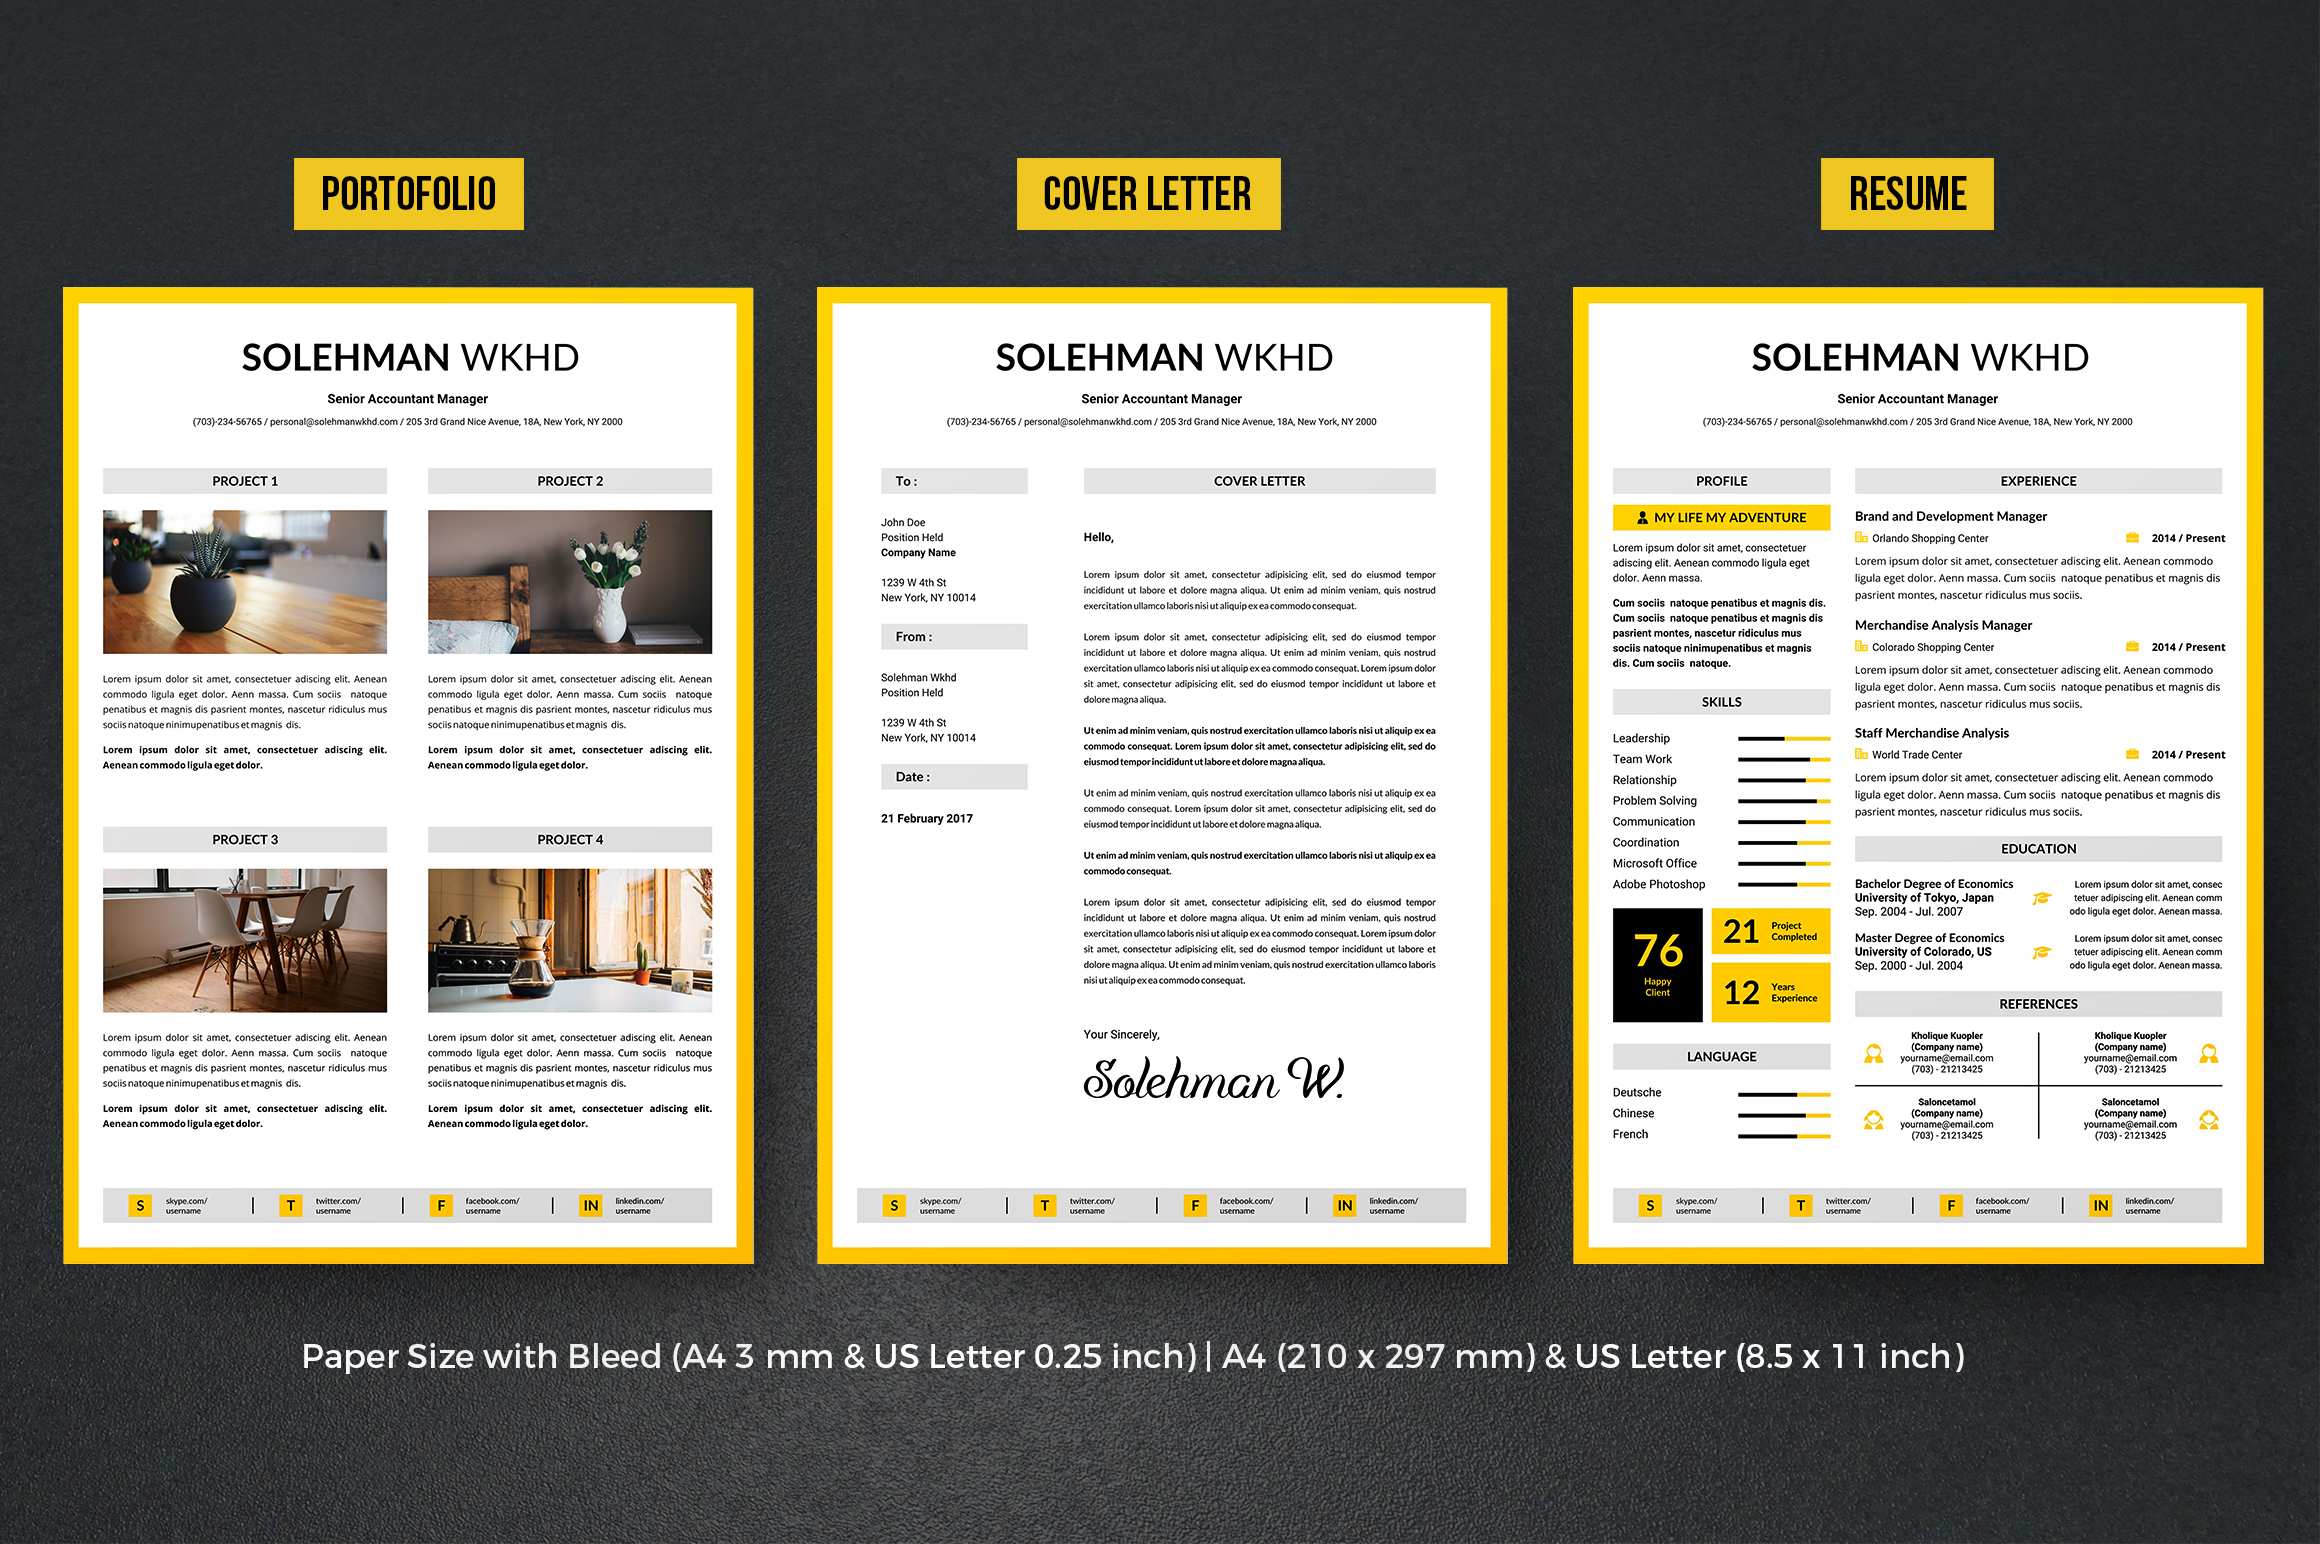 Resume example image 2